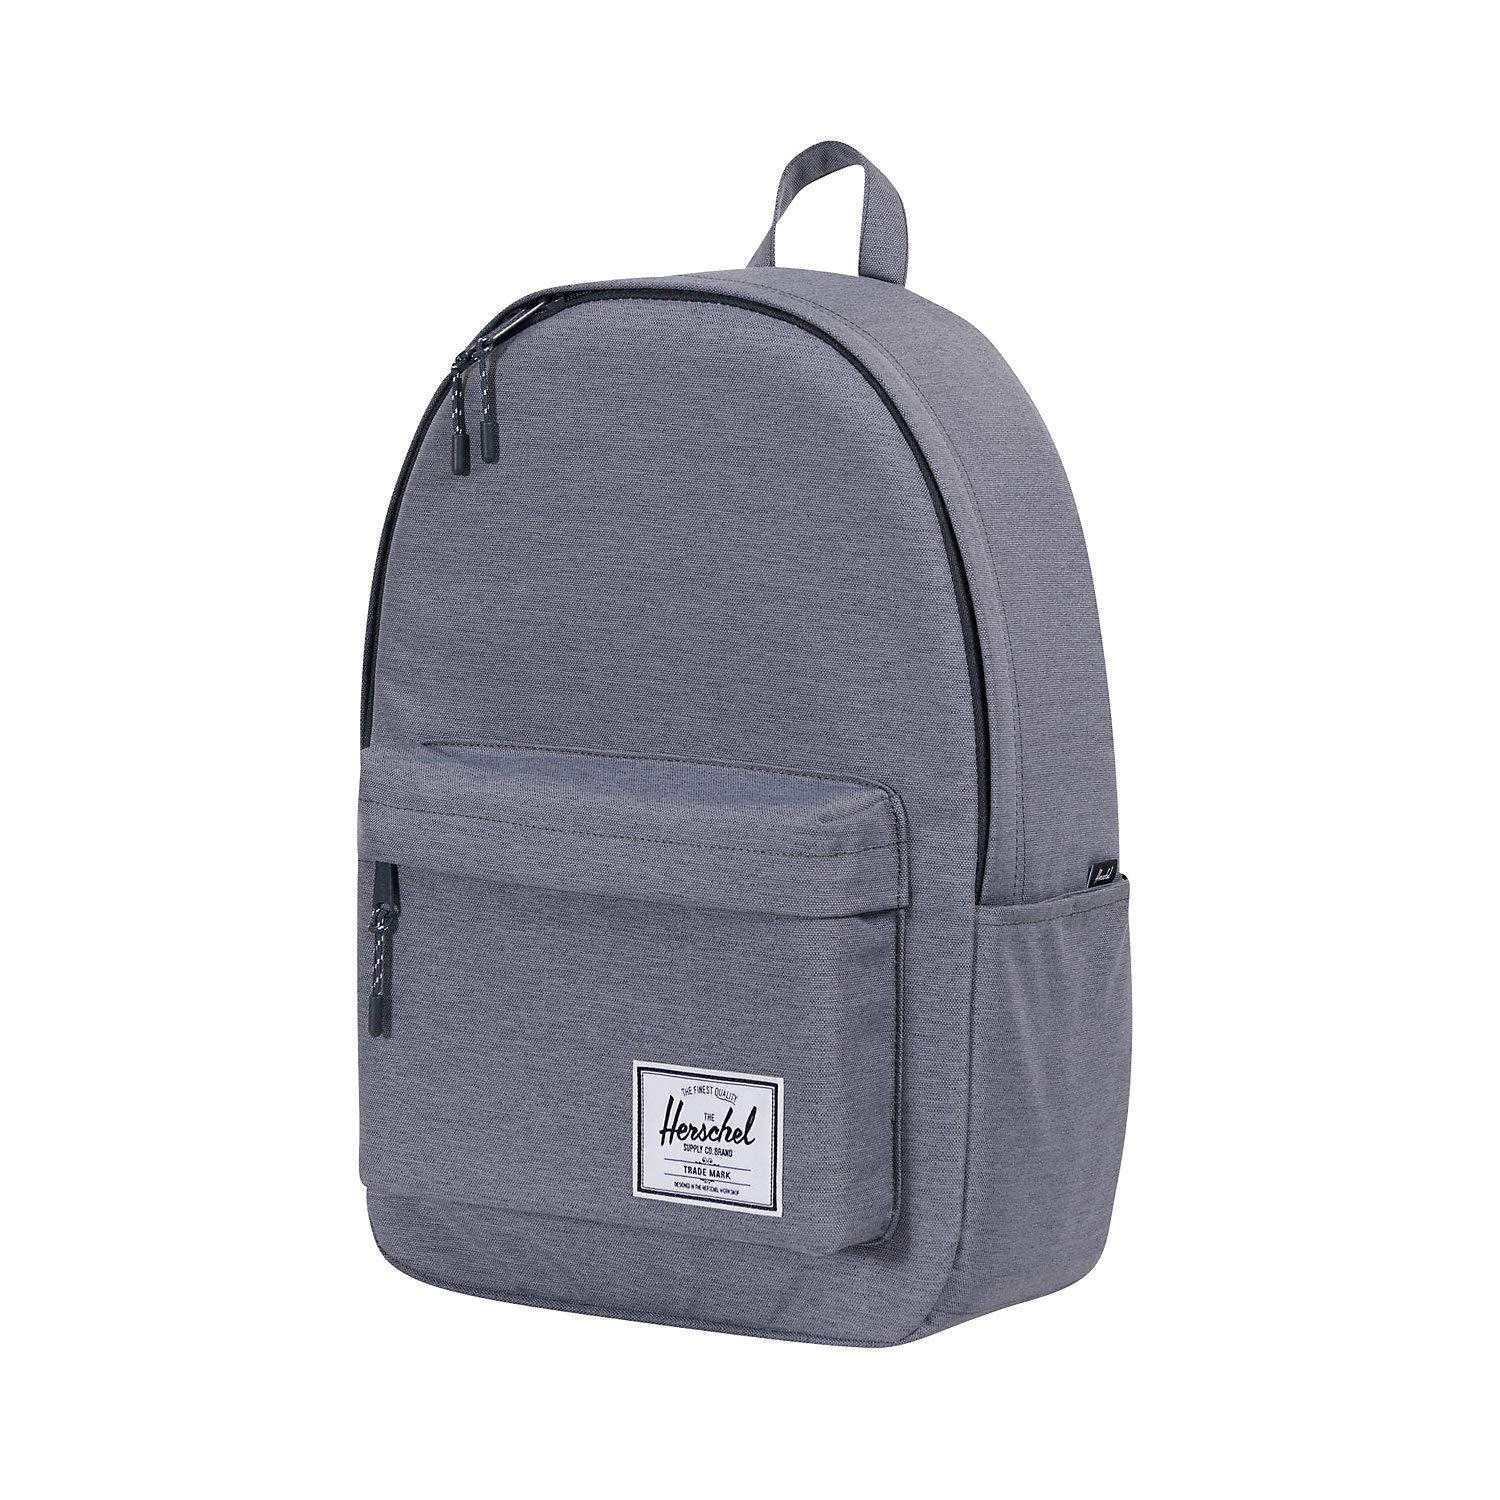 Herschel Classic X-Large Backpack, Mid Grey Crosshatch, One Size